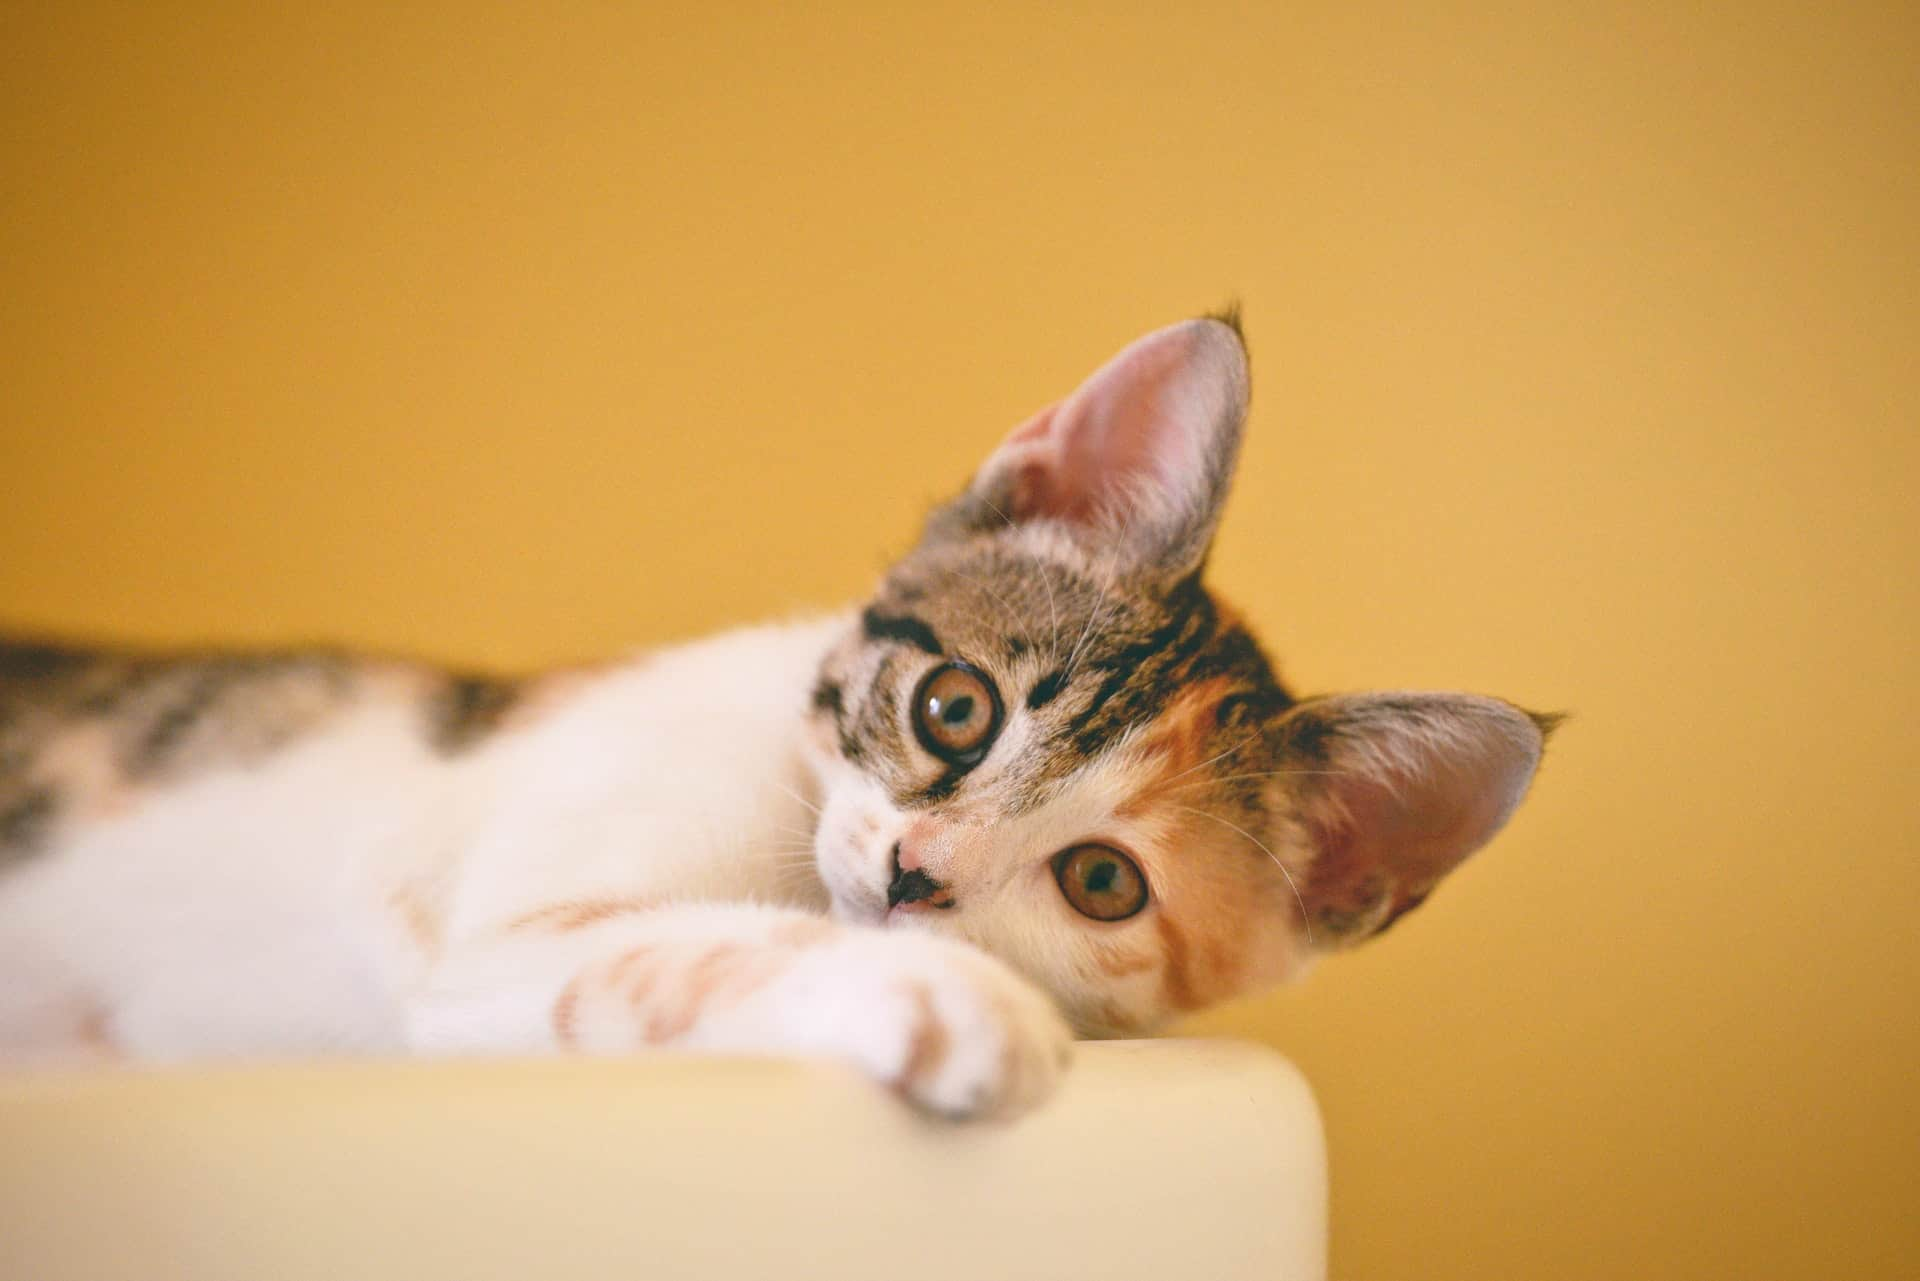 The Secret Of Pets - How To Keep Your Pet Healthy